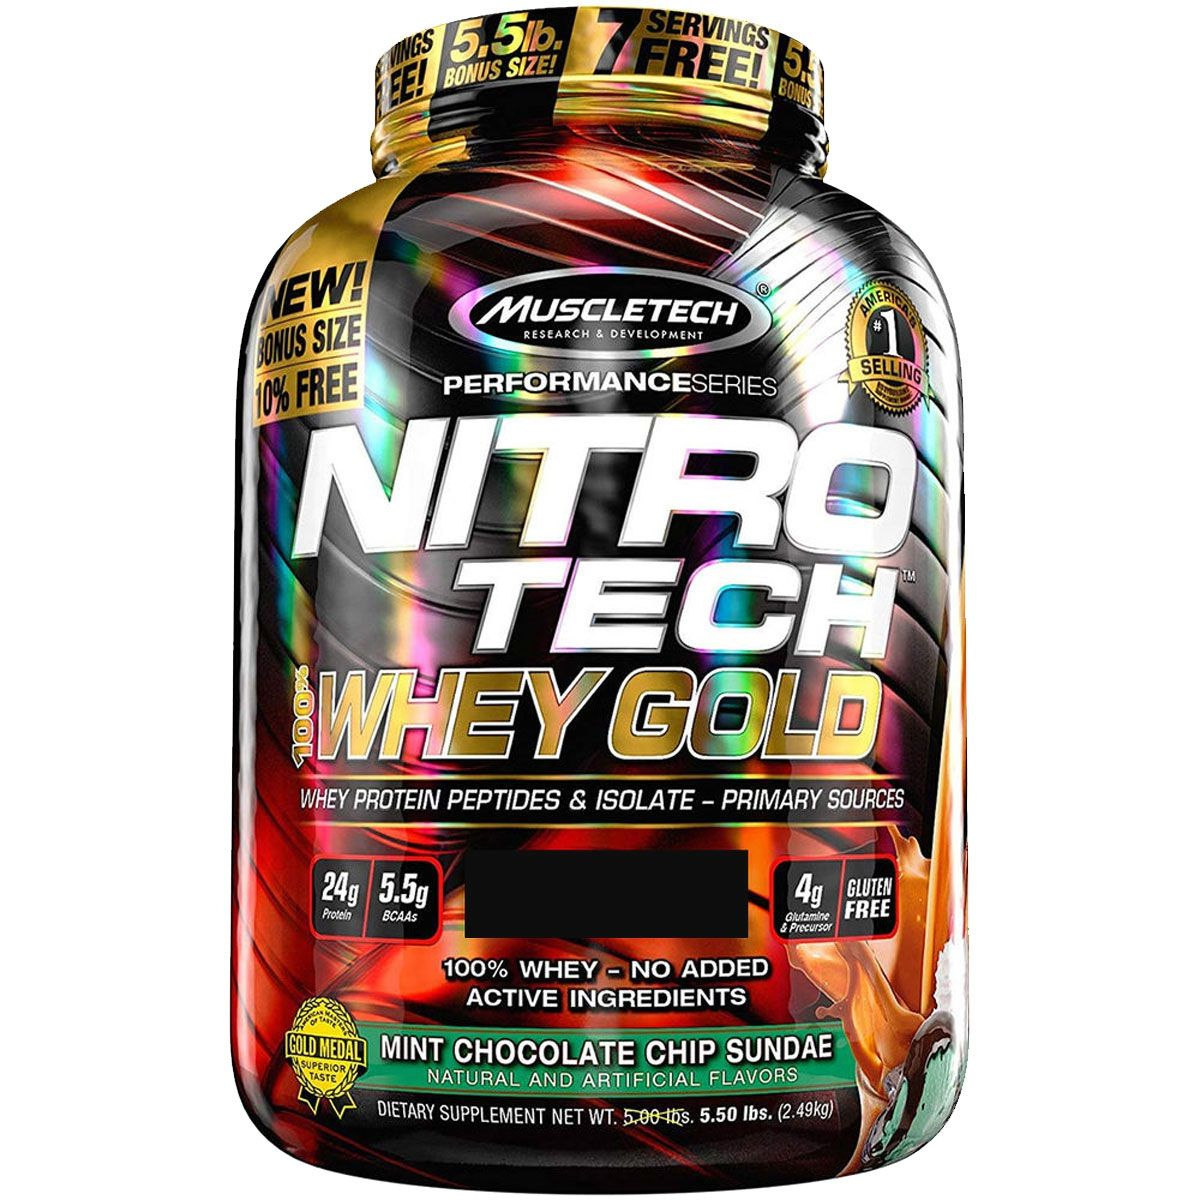 Nitro Tech 100% Whey Gold 5lbs Muscletech